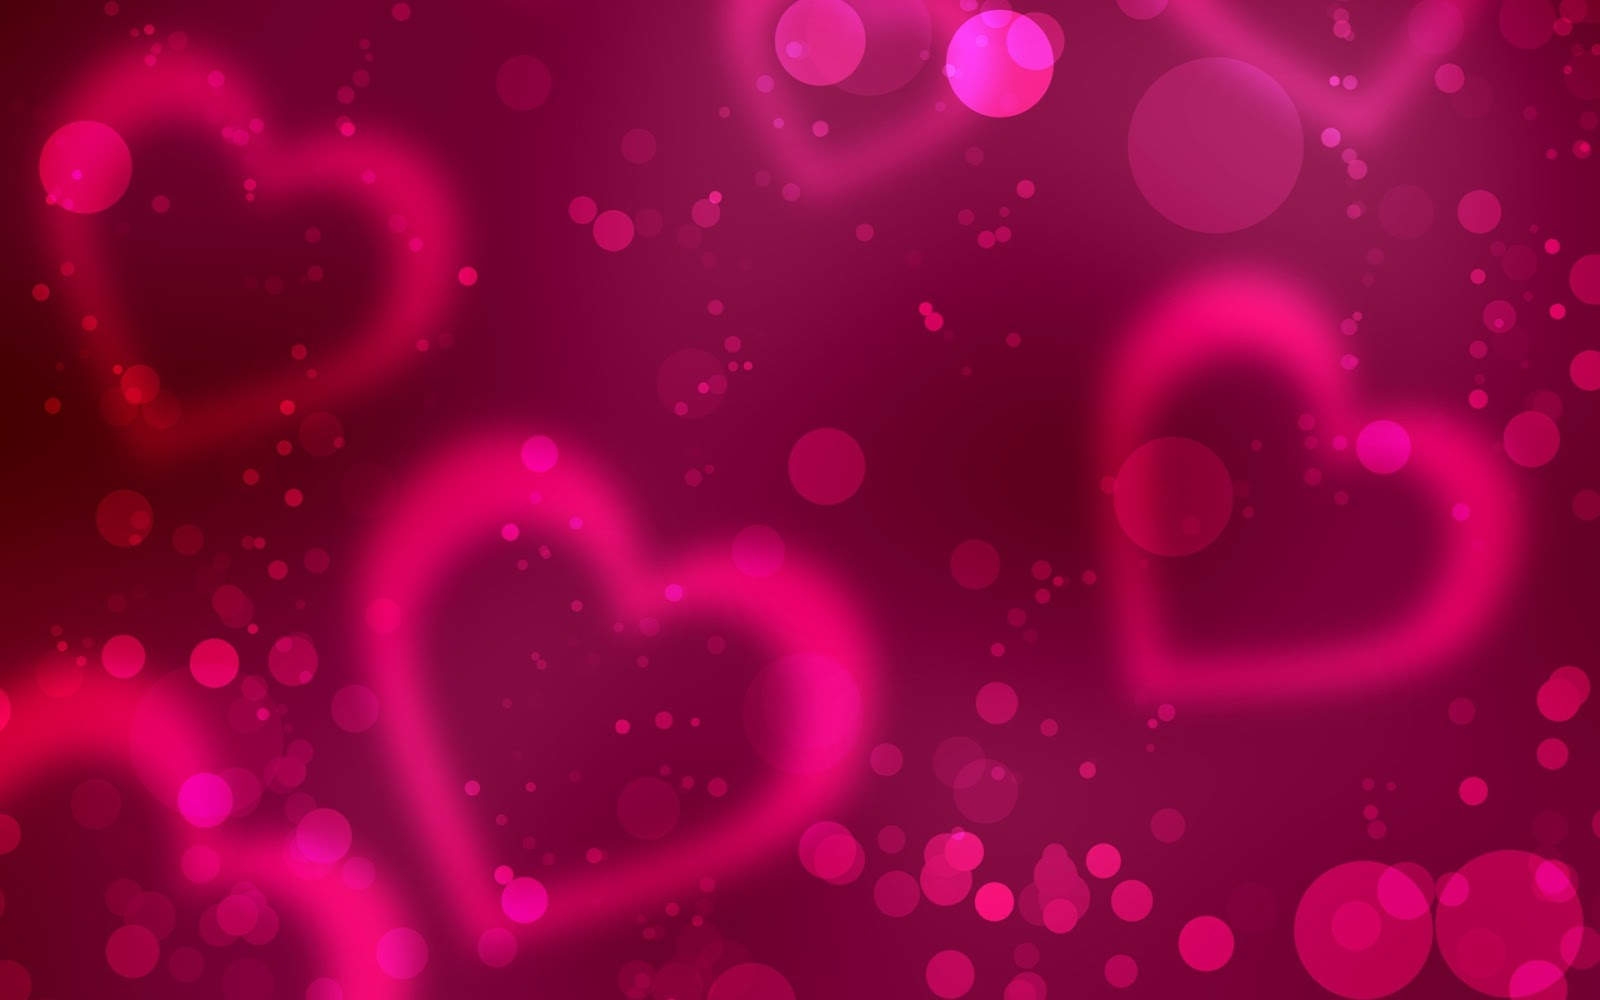 Love Wallpaper For Background : Love Wallpaper Backgrounds 19152 1600x1000 px ~ HDWallSource.com